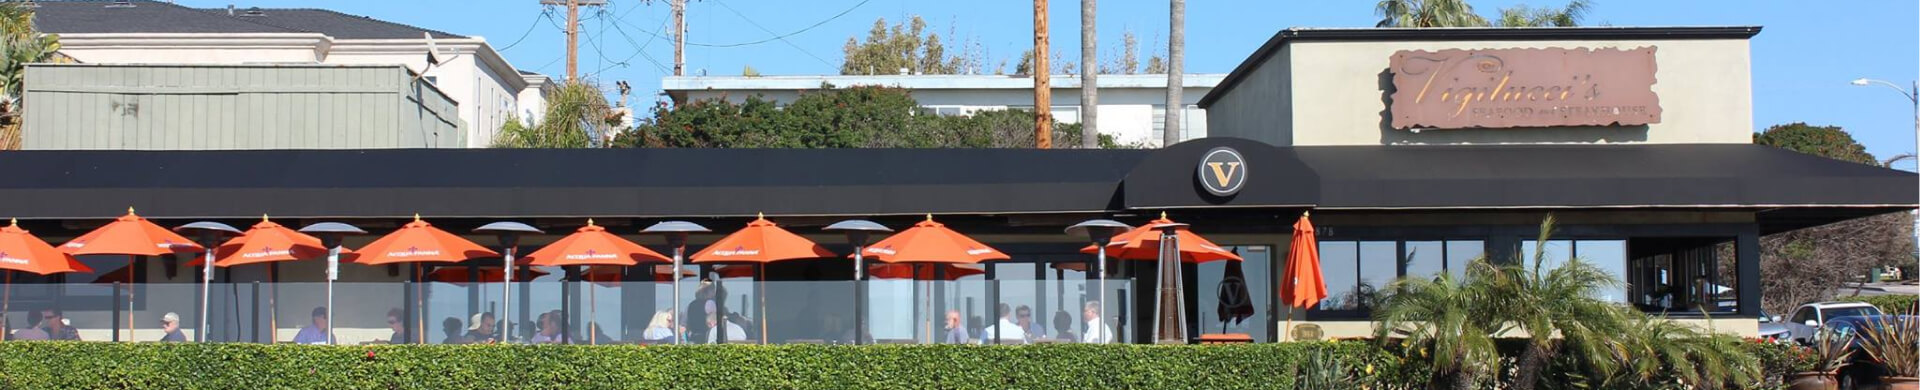 Street view of Vigilucci's restaurant with outdoor umbrella-covered patio visible.